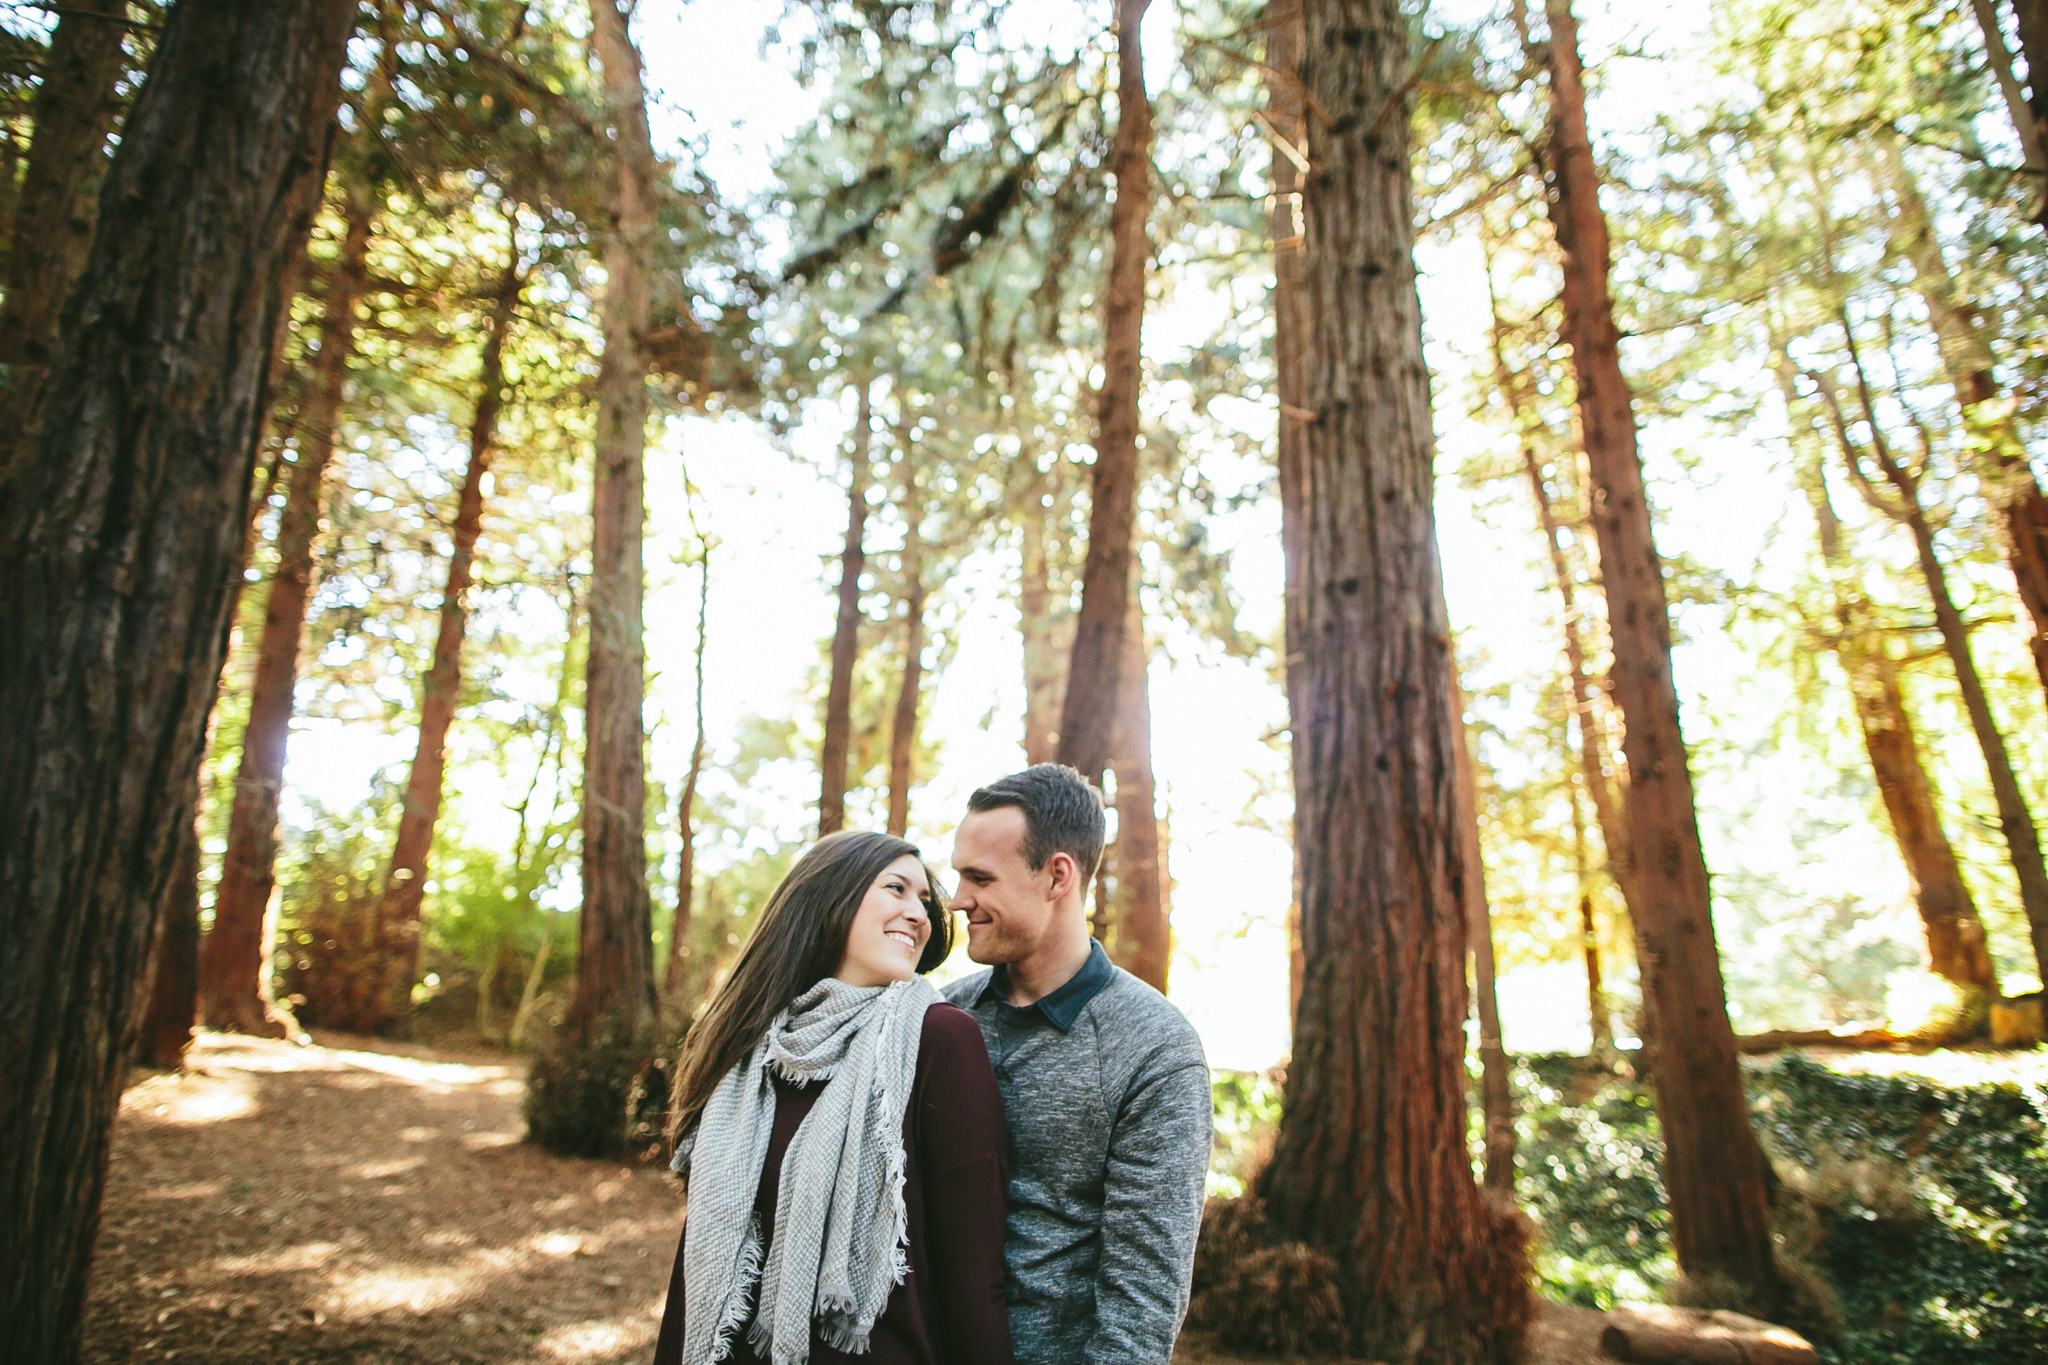 Sunee+Adam-Proposal-KellyBoitanoPhotography_WEB20151229_0054